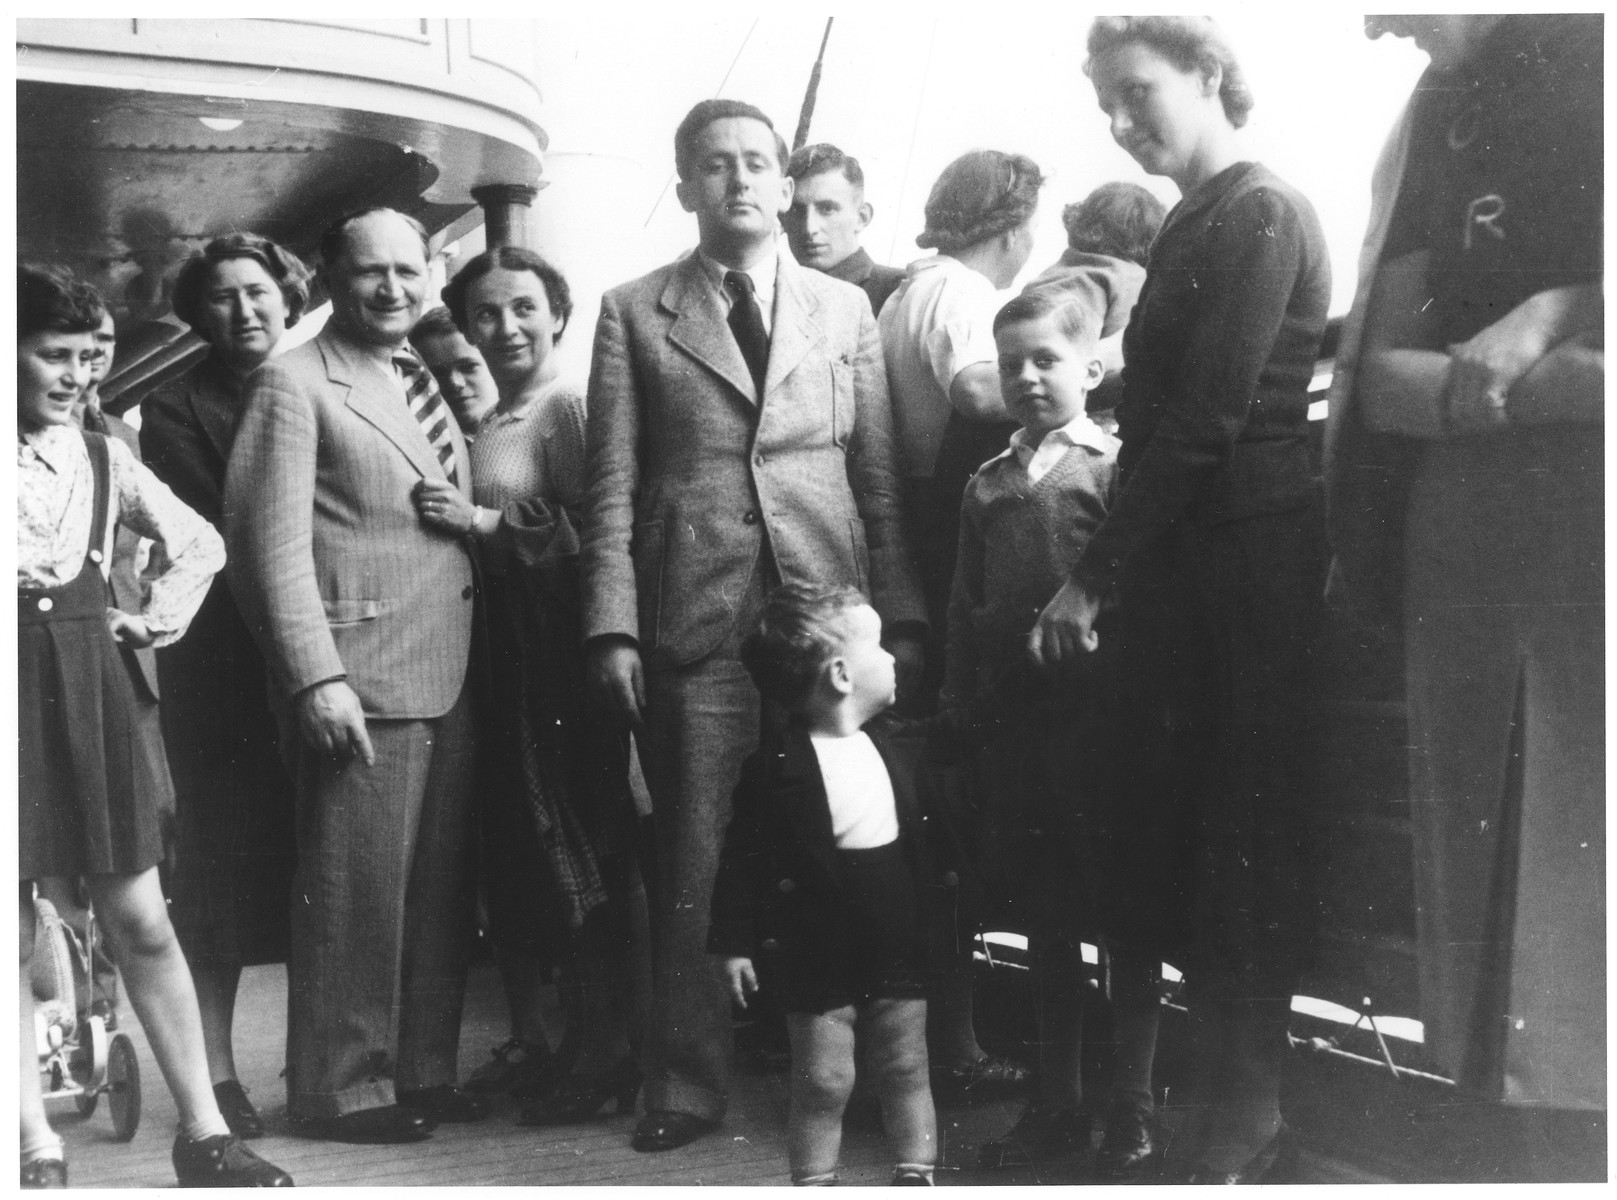 Passengers on the deck of the MS St. Louis.